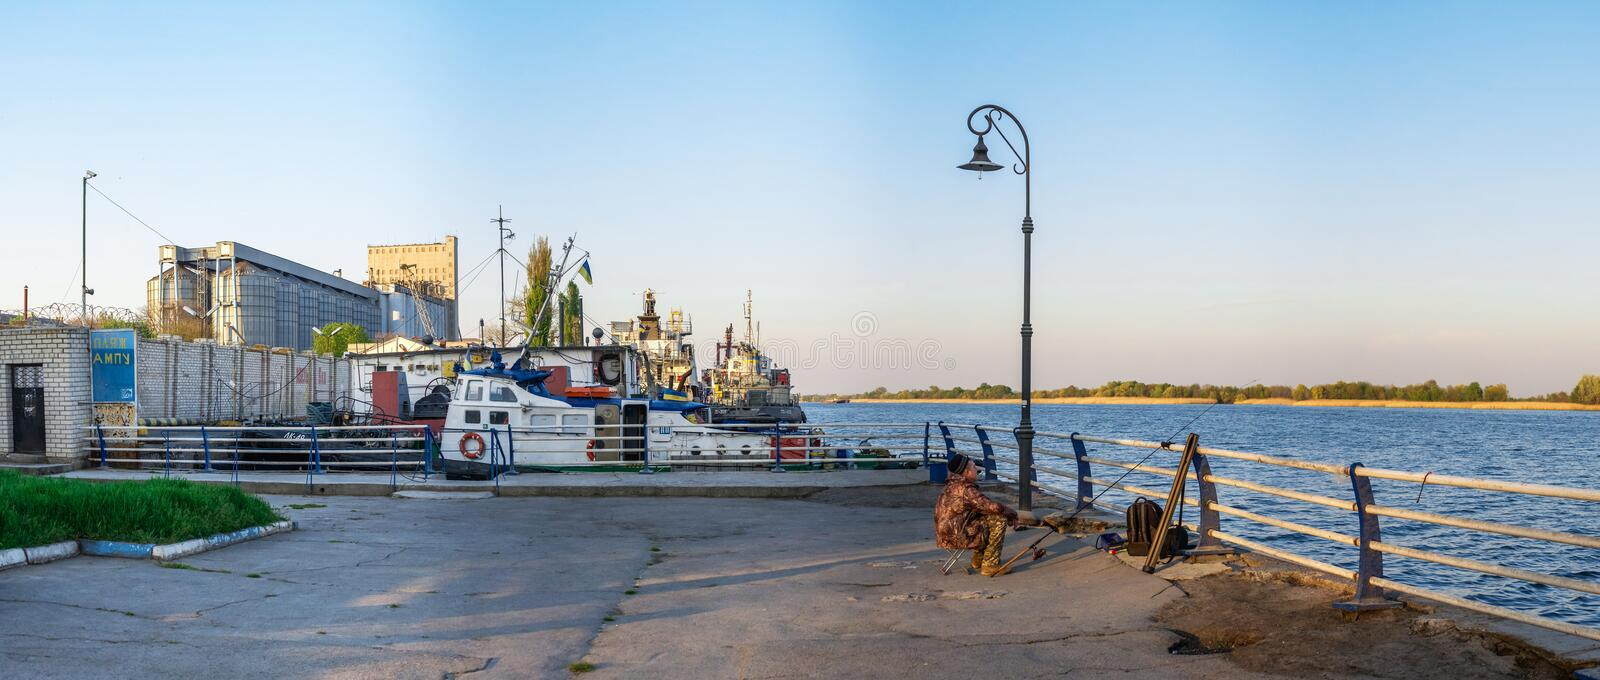 Fishermen on the waterfront in Kherson, Ukraine. Kherson, Ukraine - 04.27.2019. Fishermen on the embankment alley in Kherson, Ukraine, on a spring evening royalty free stock image